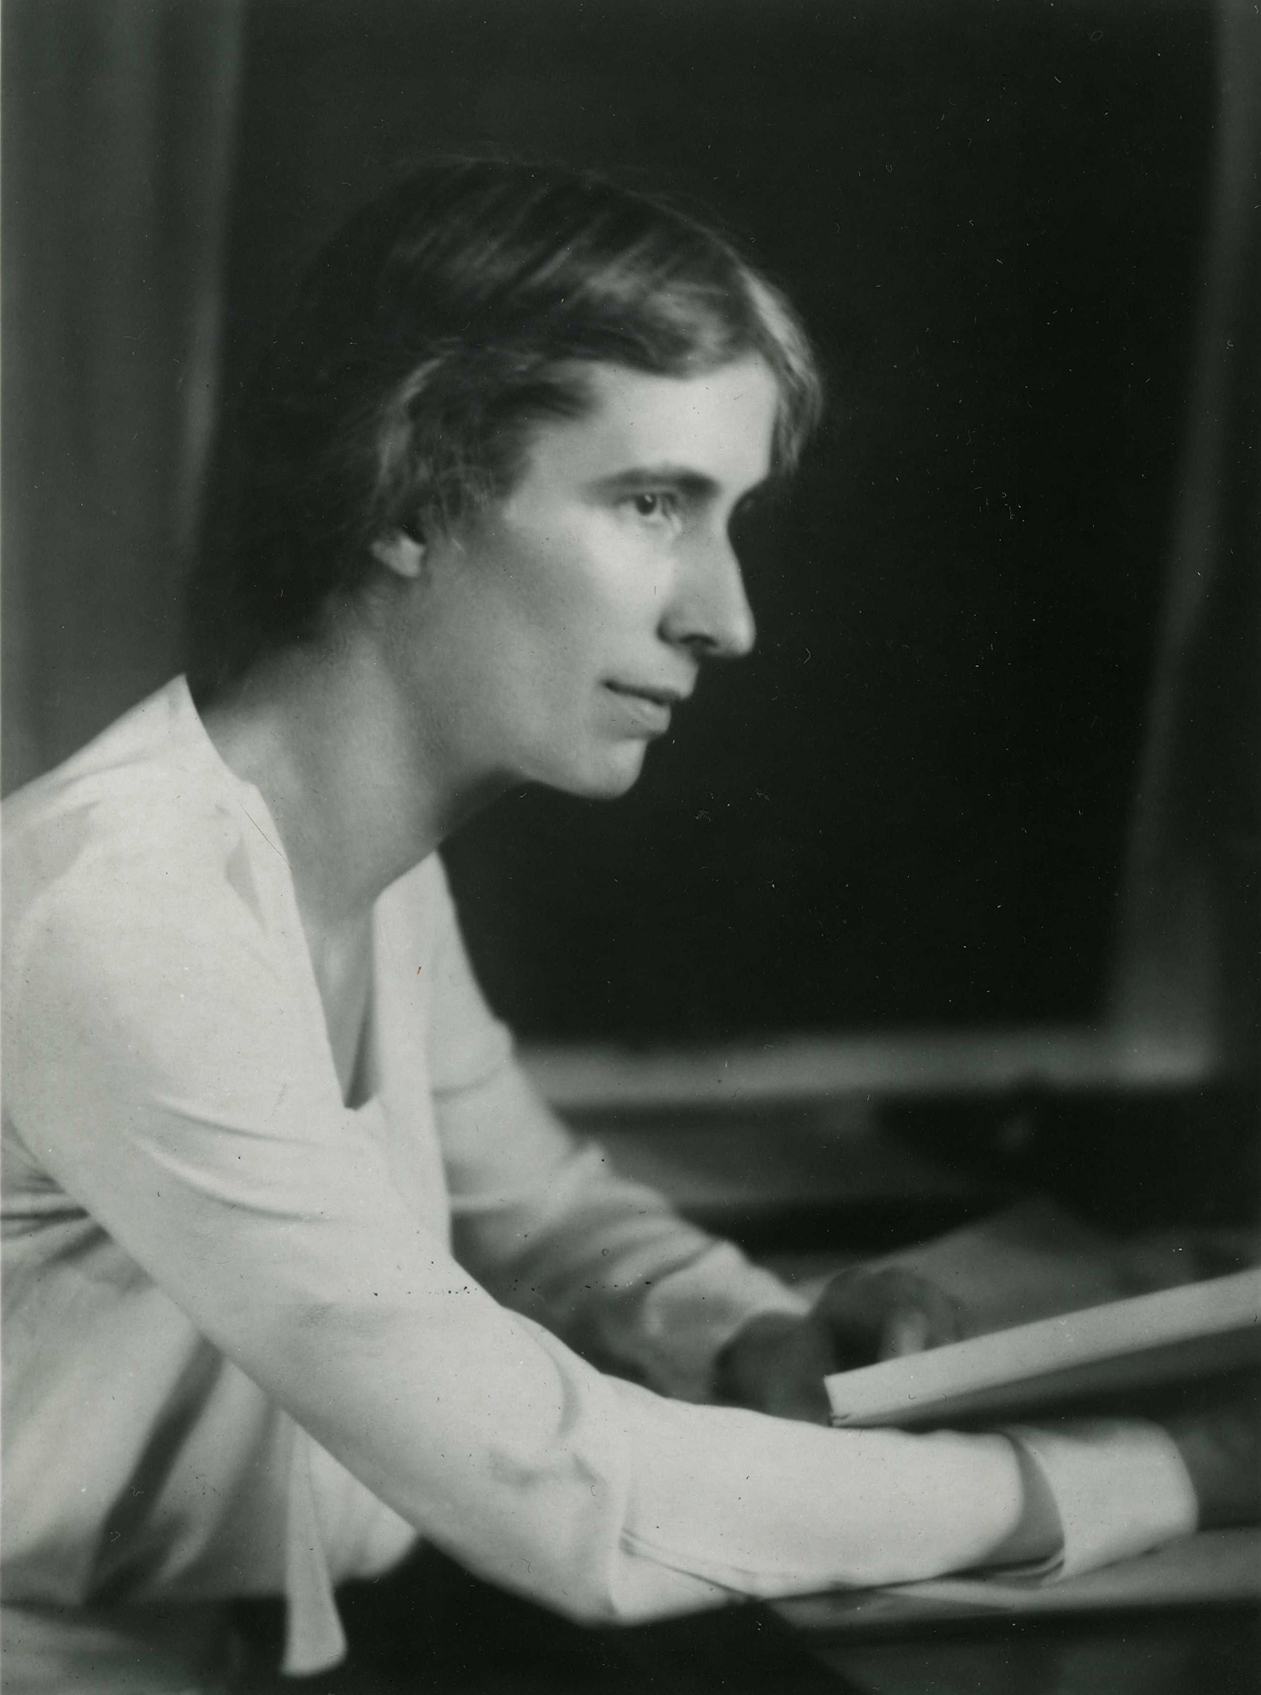 Olive C. Hazlett. Photograph courtesy of LHM Institute.